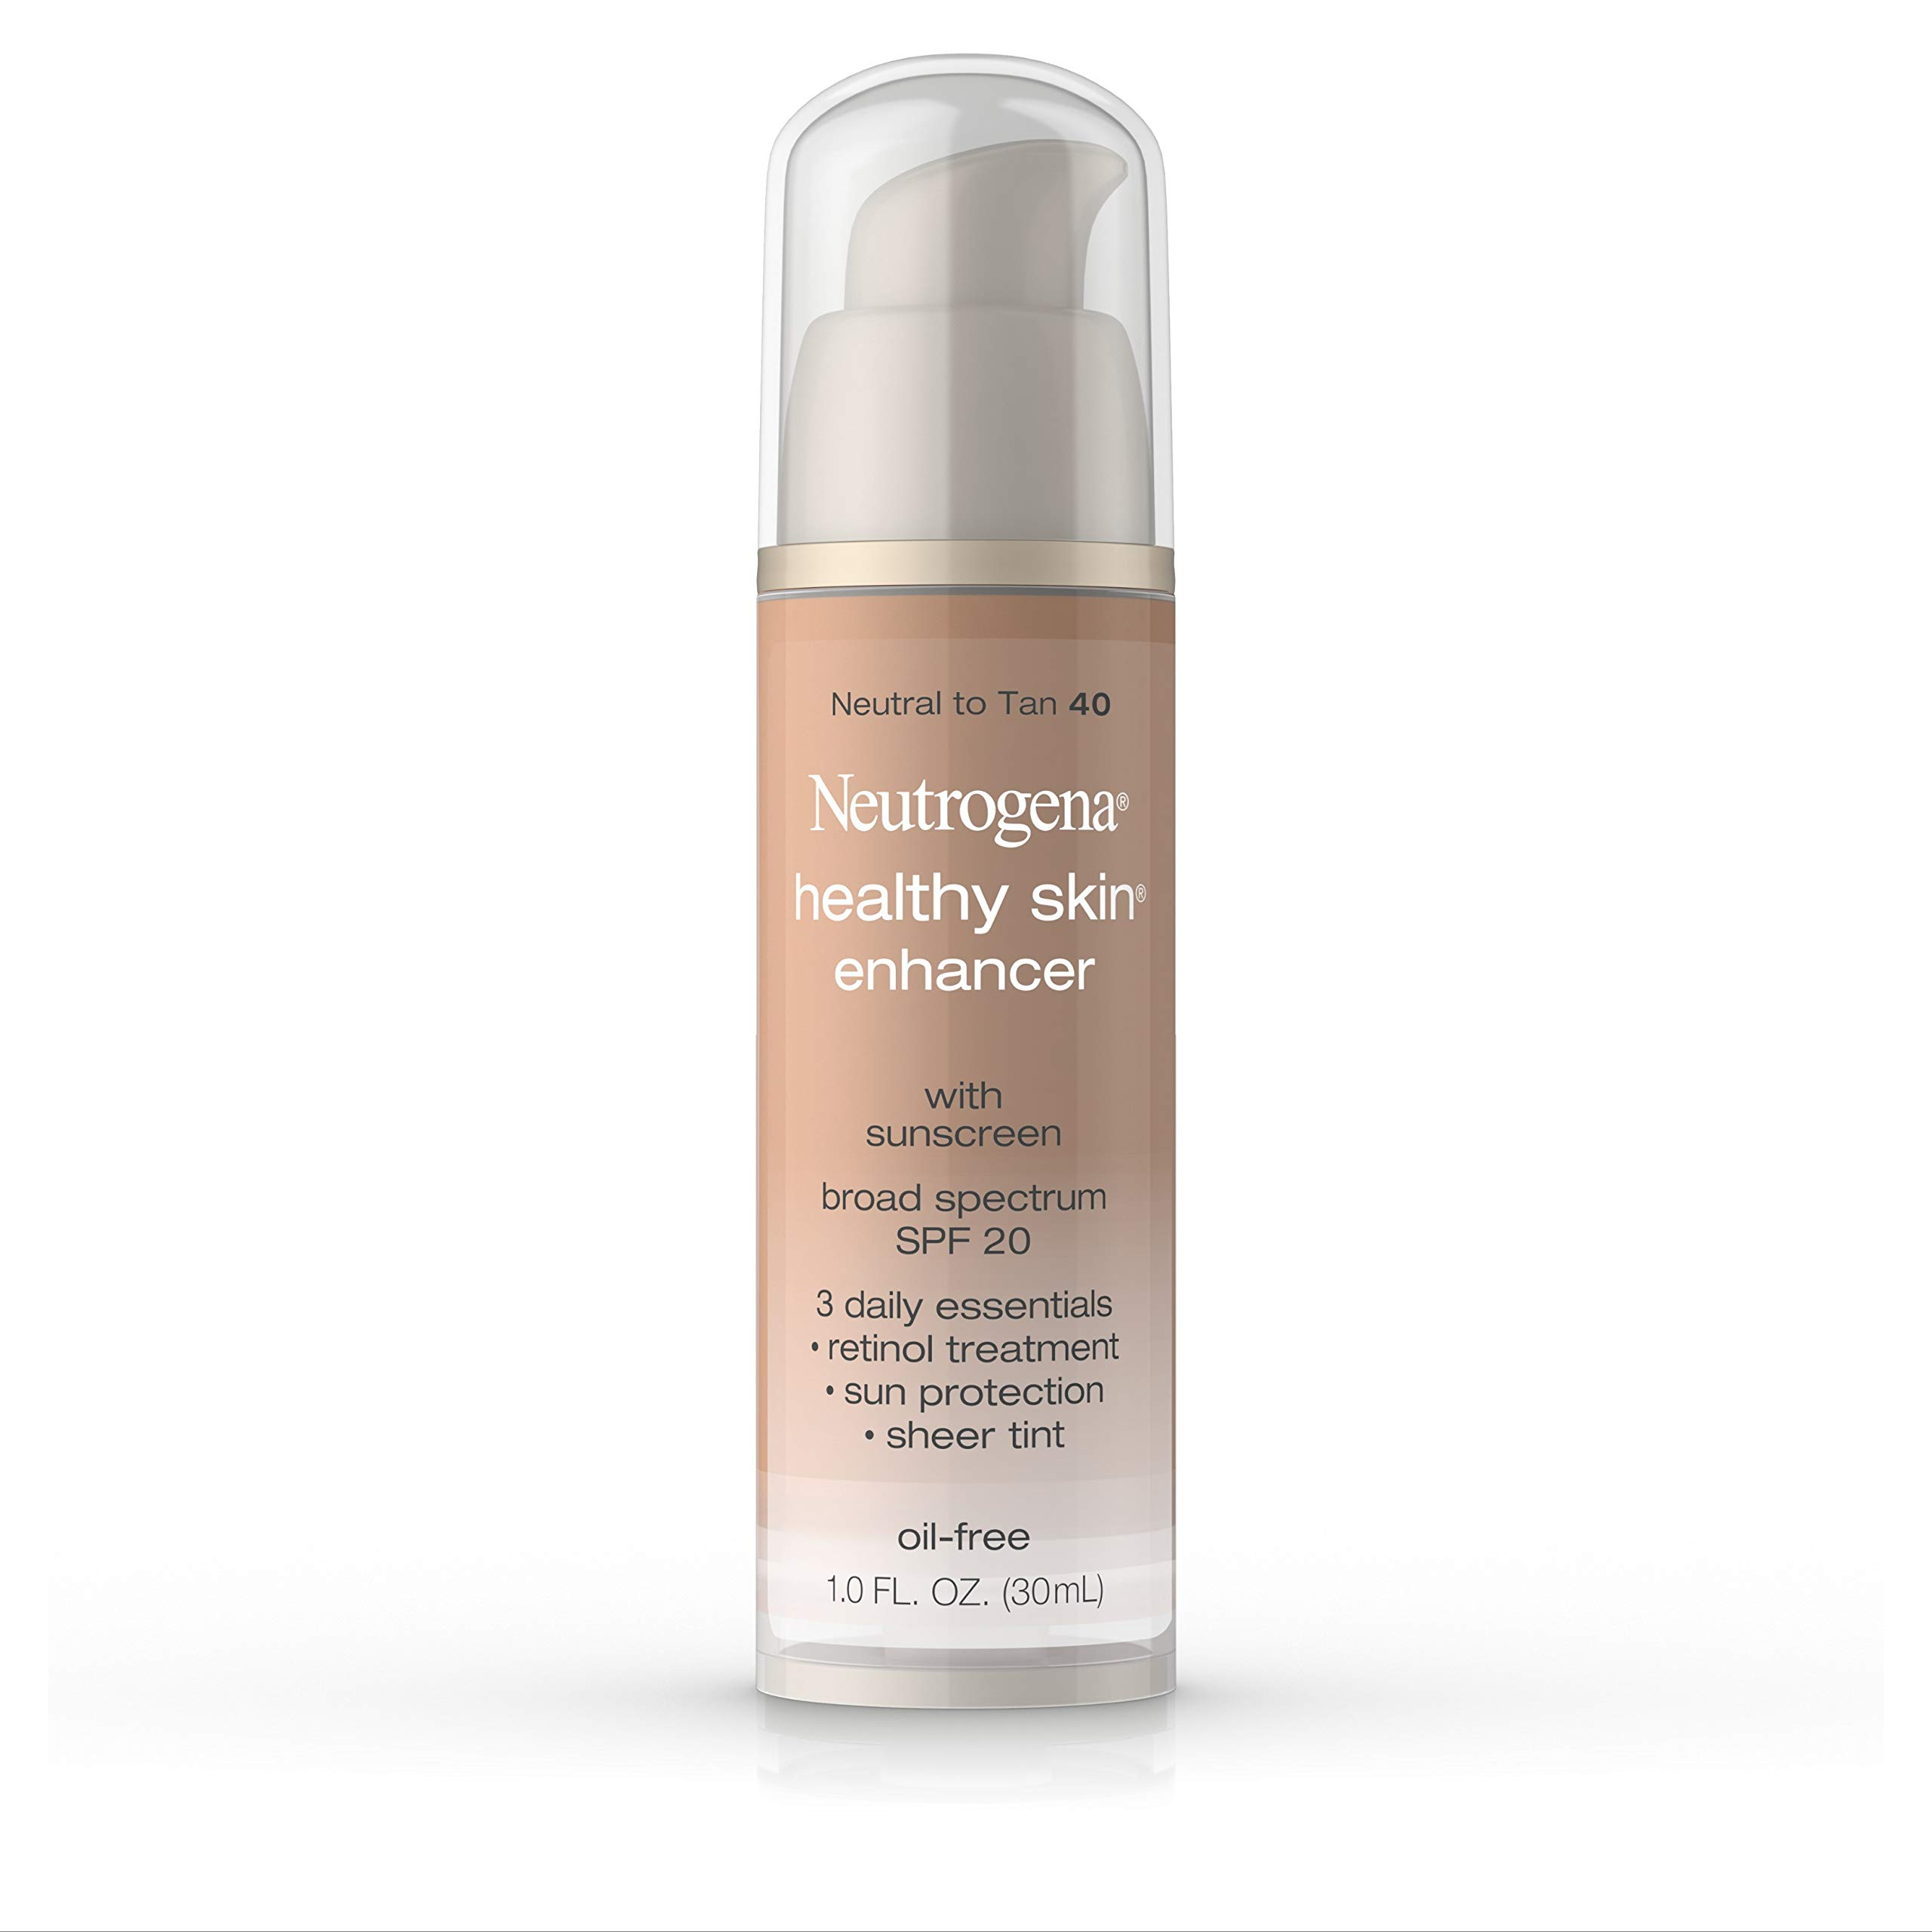 Neutrogena Healthy Skin Enhancer Broad Spectrum Spf 20, Neutral To Tan 40, 1 Oz. by Neutrogena